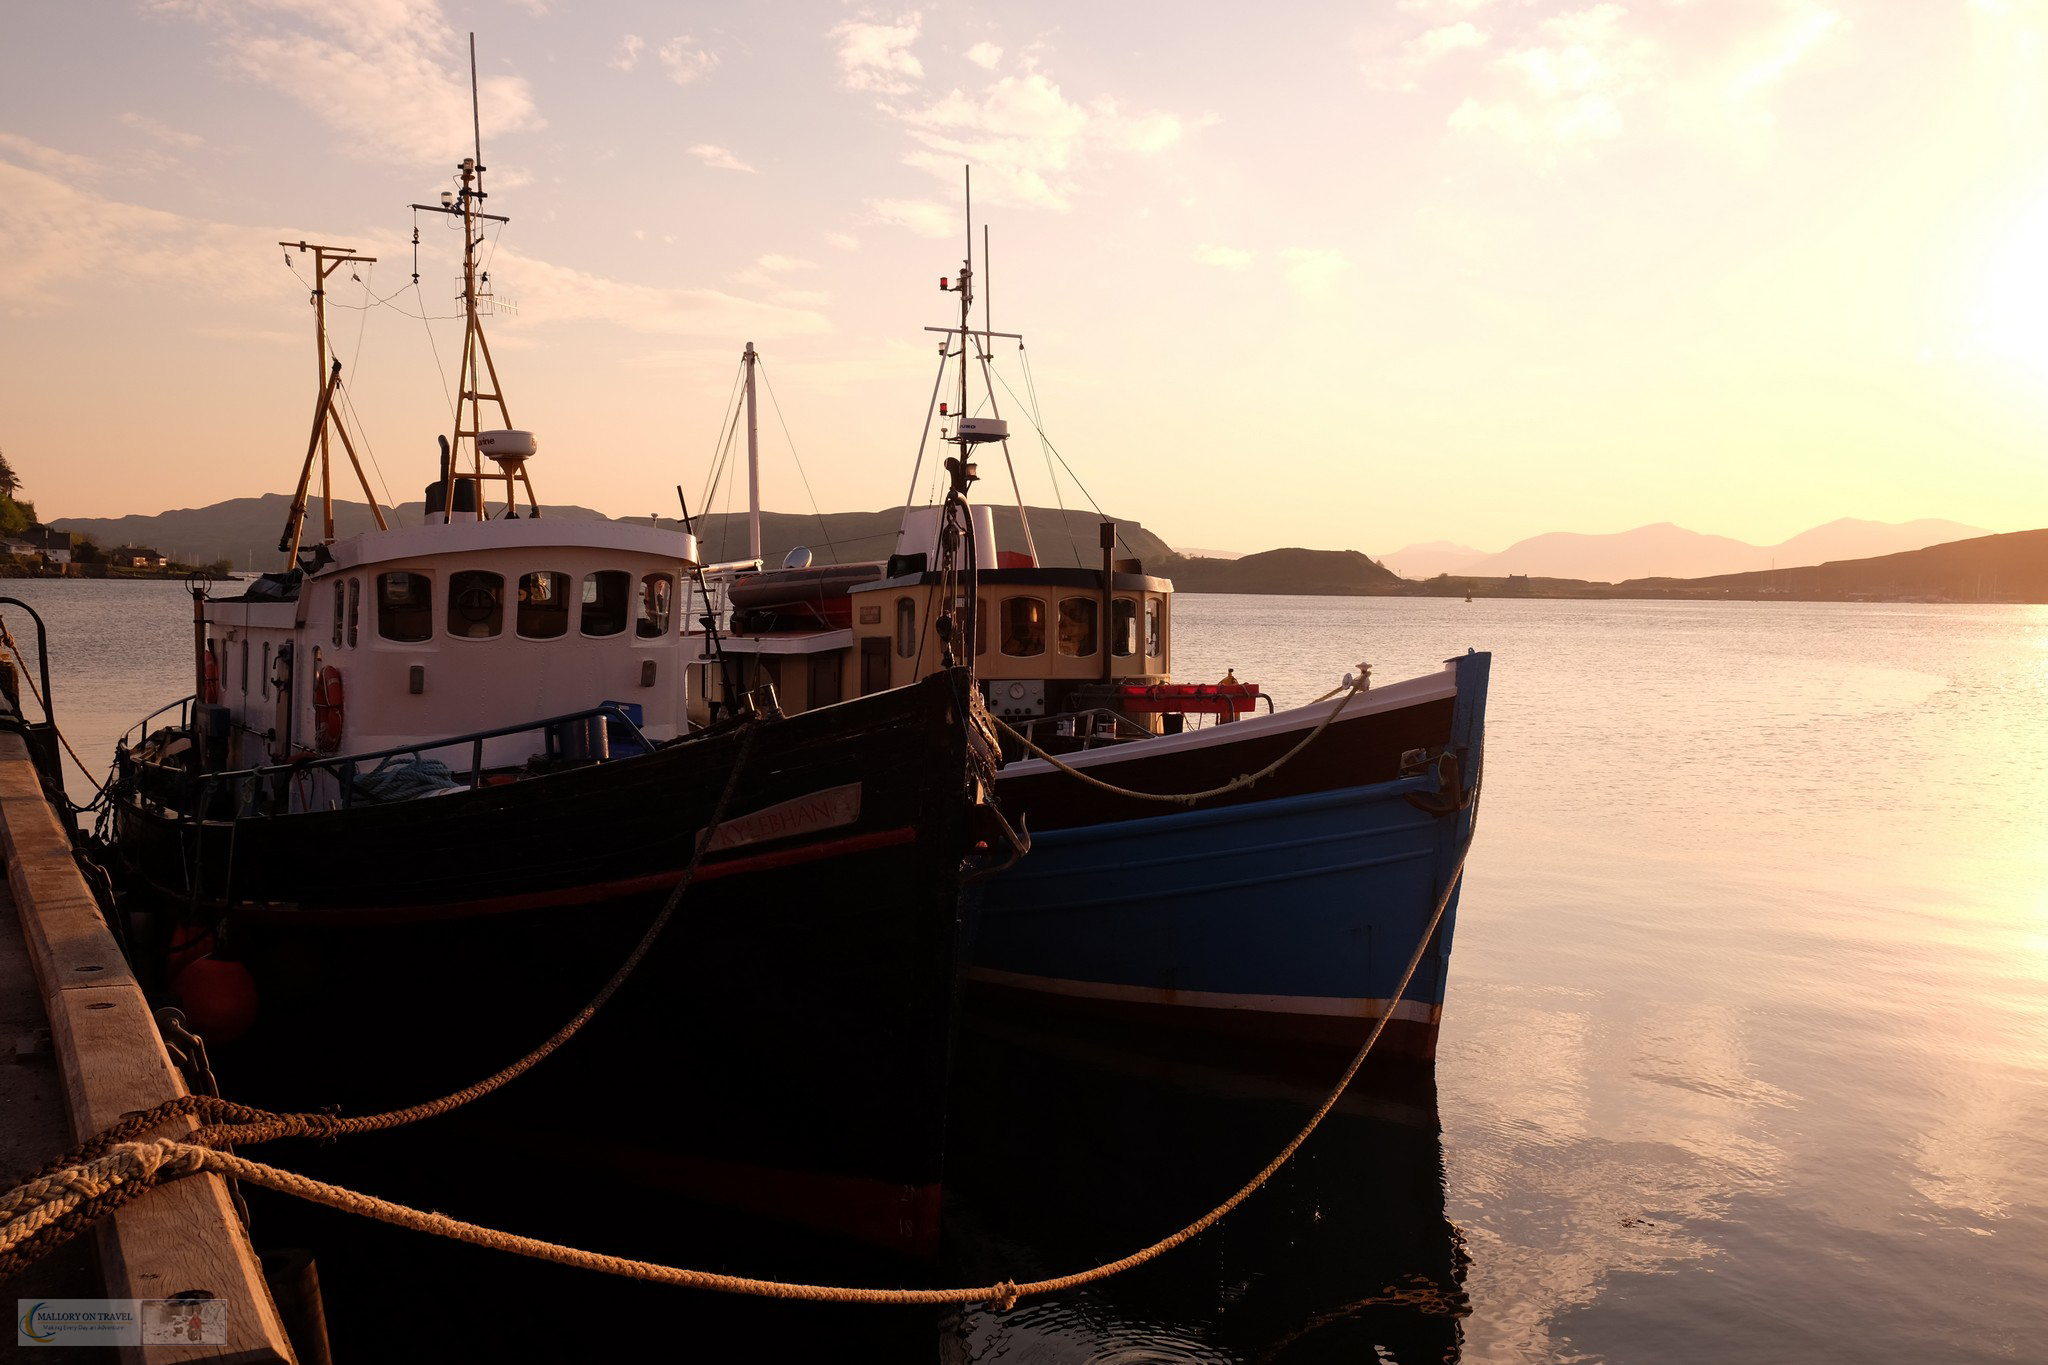 The fishing port of Oban, in Argyll, the gateway to the Highlands and Islands of Scotland on Mallory on Travel adventure travel, photography, travel Iain Mallory_Scotland3435